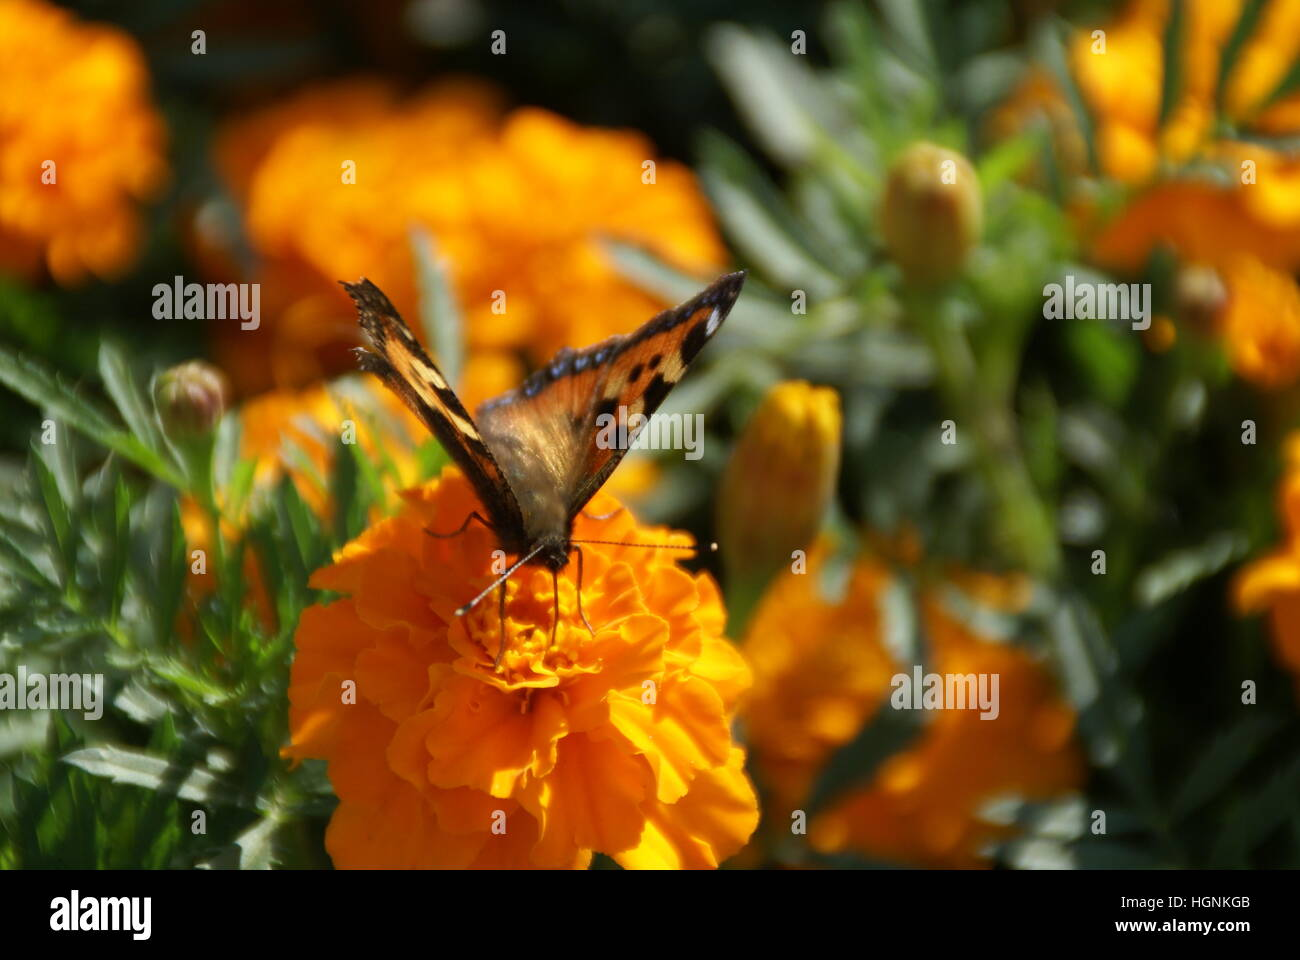 A butterfly sitting on a marigold, pollinating it. - Stock Image